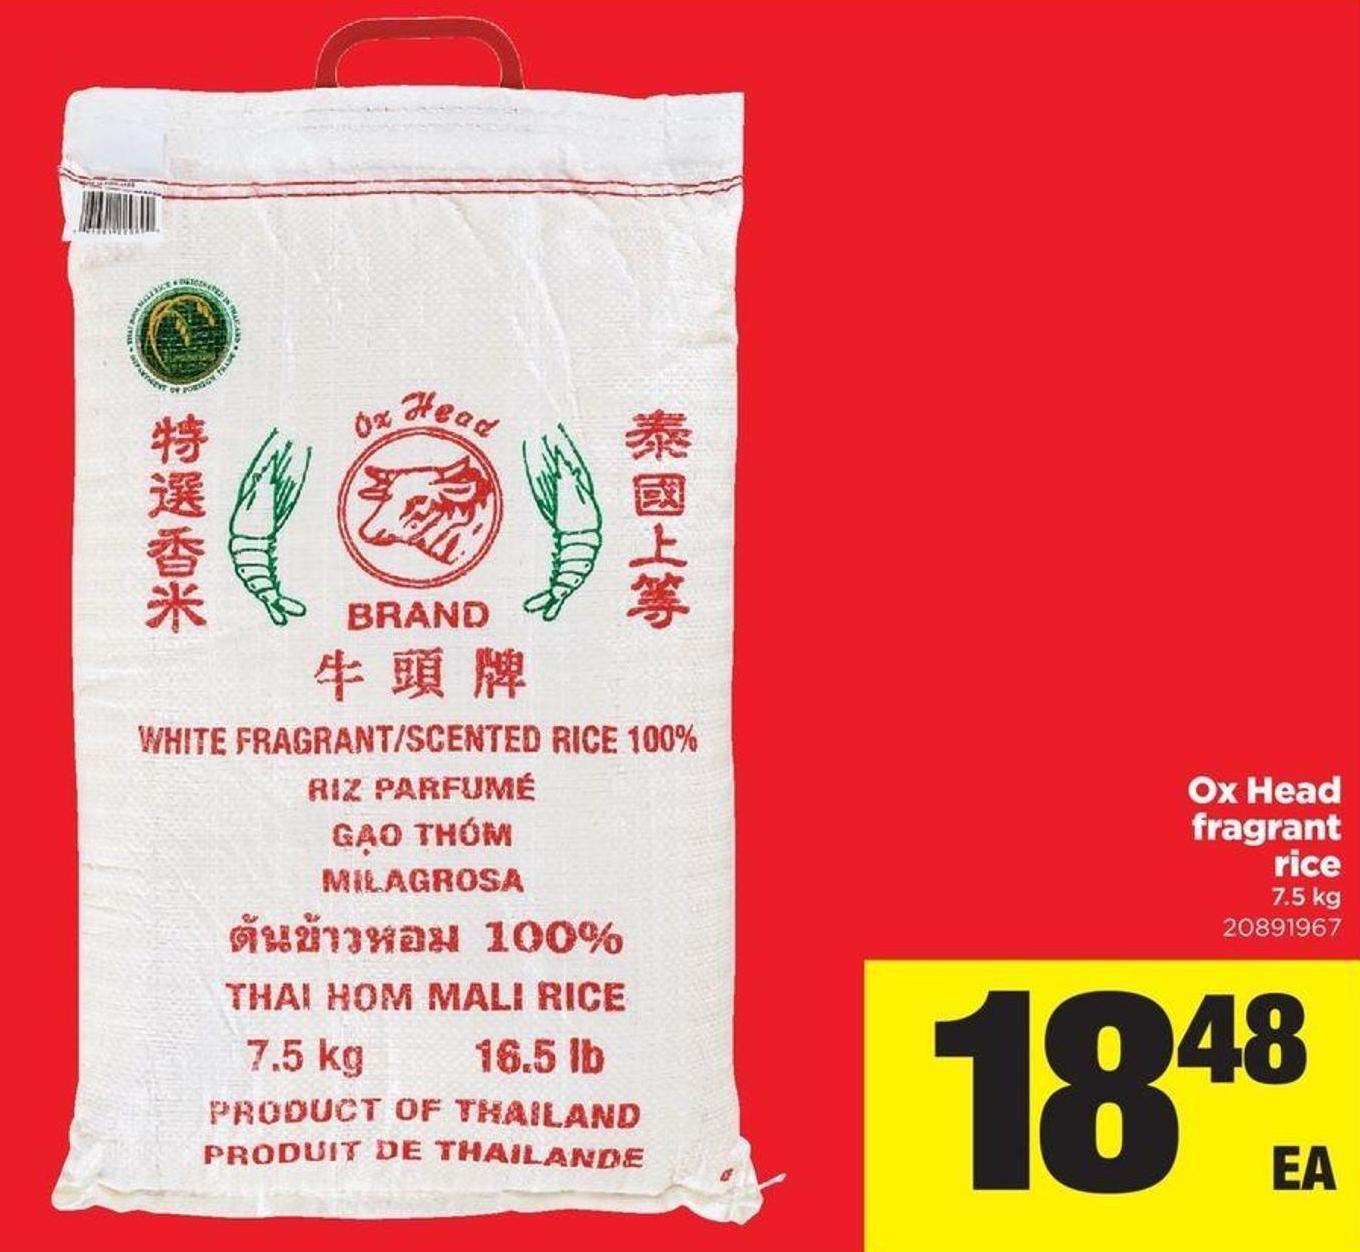 Ox Head Fragrant Rice - 7.5 Kg